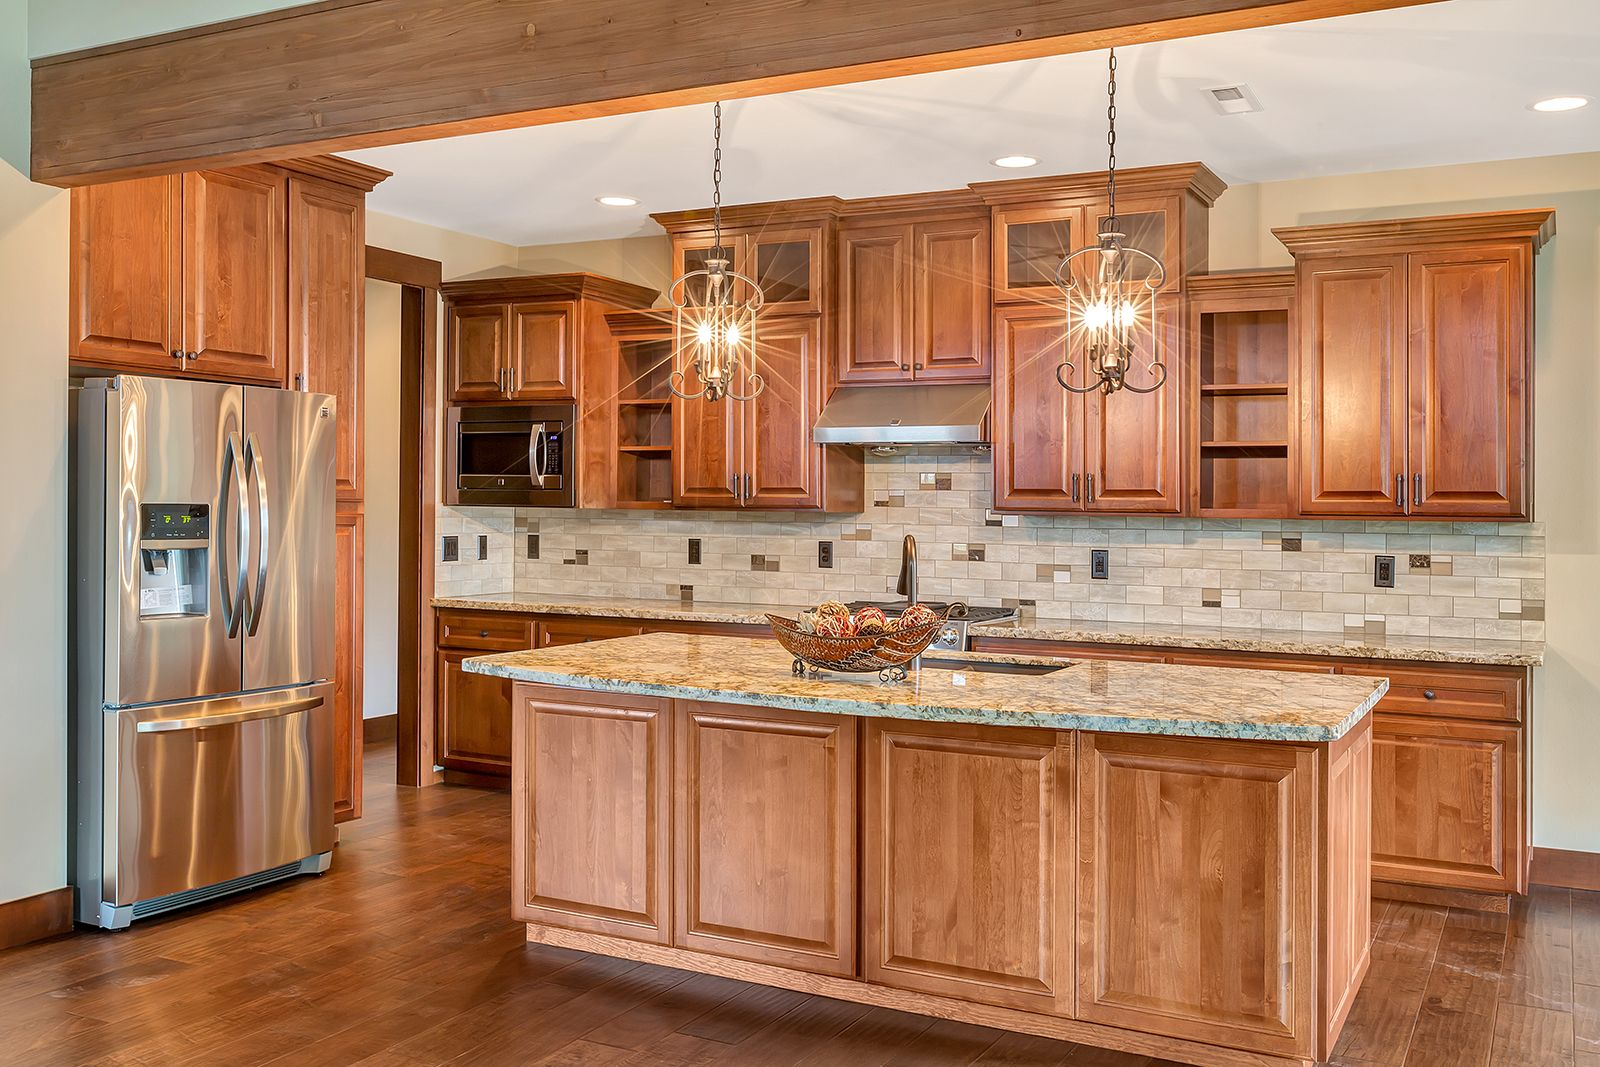 Stunning Craftsman Style Kitchen Alder Cabinets With Raised Panel Doors And Drawers Slab Kitchen Cabinet Door Styles Custom Kitchen Cabinets Kitchen Design